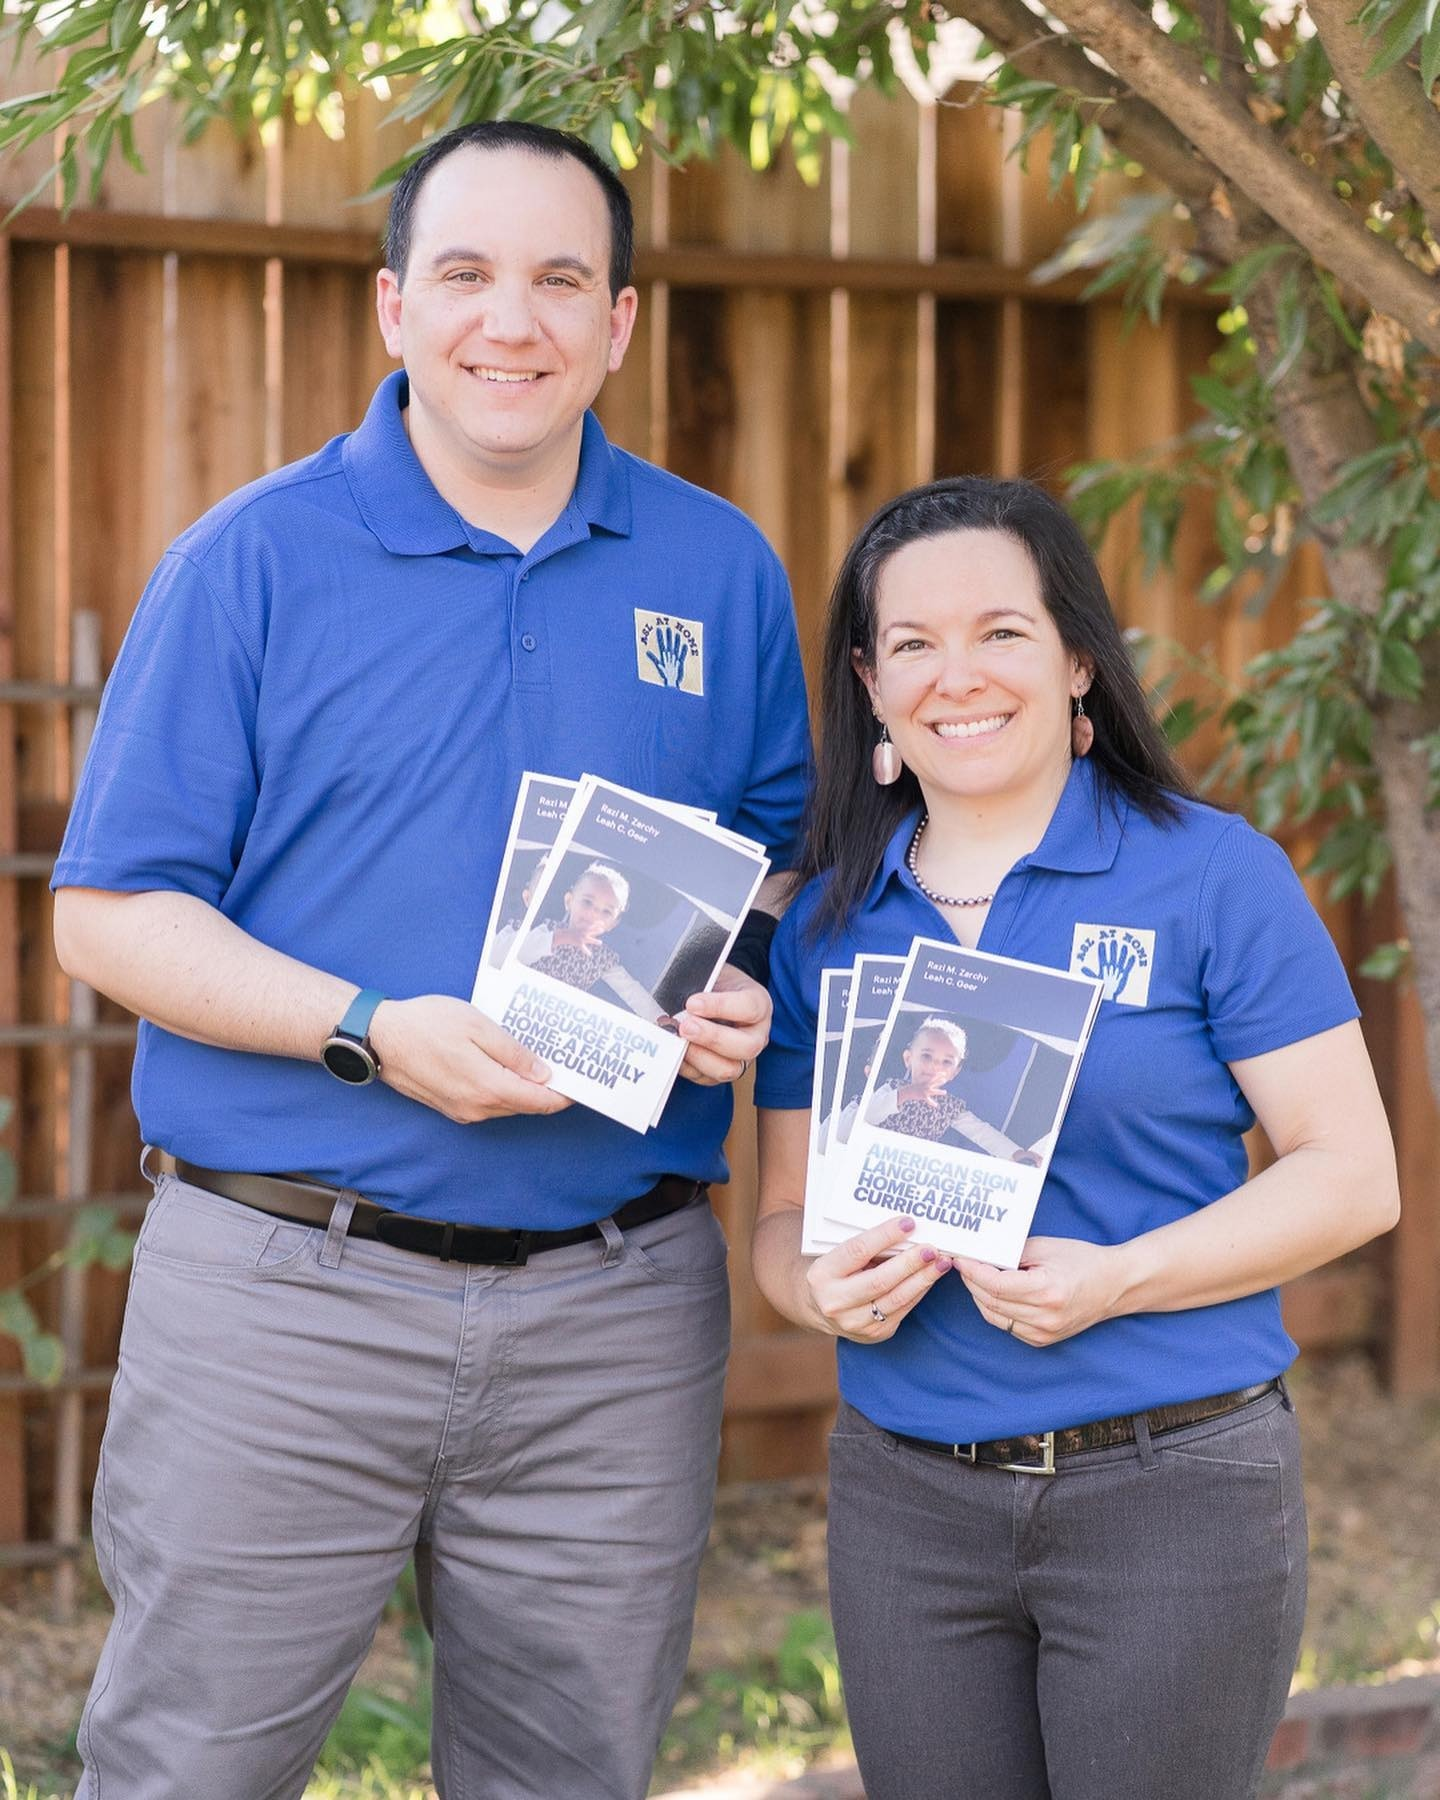 Razi and Leah standing together, wearing blue ASL at Home polo shirts and holding up several print copies of their book